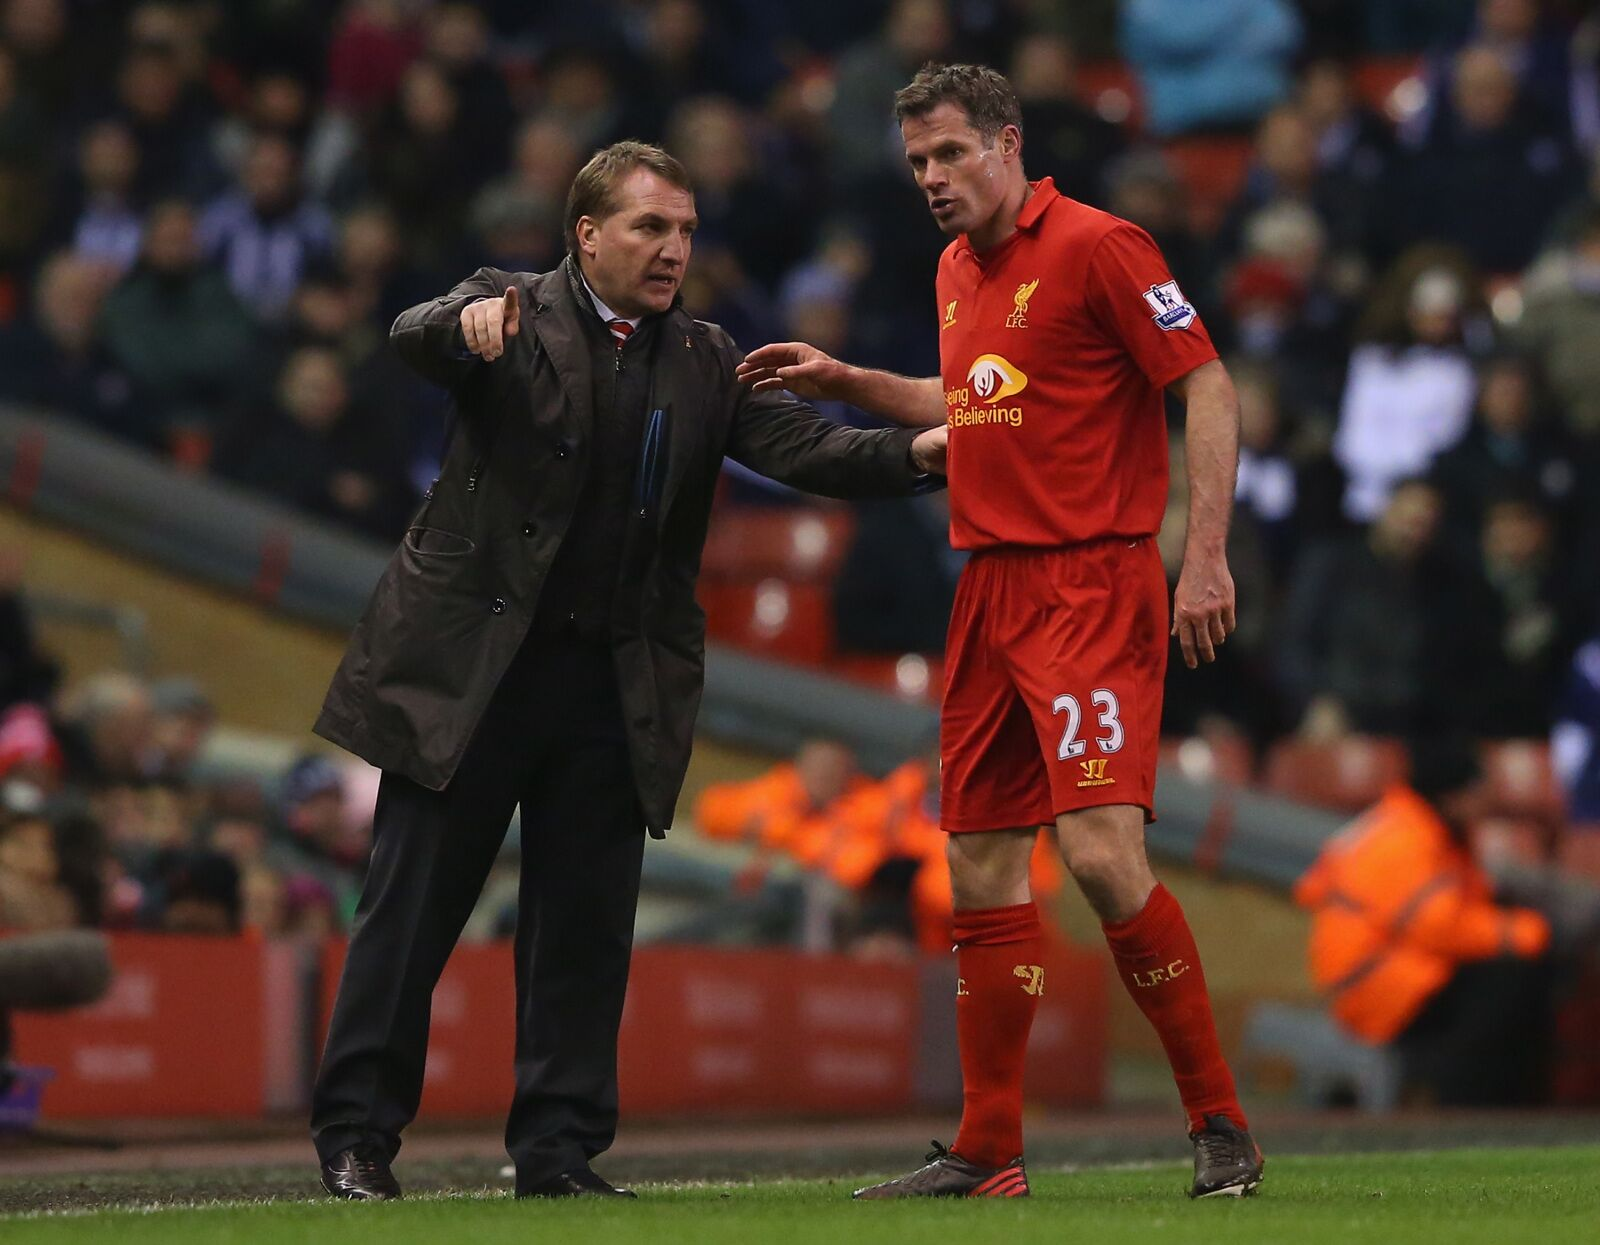 Brendan Rodgers apologizes for ruining Jamie Carragher's career: Leicester